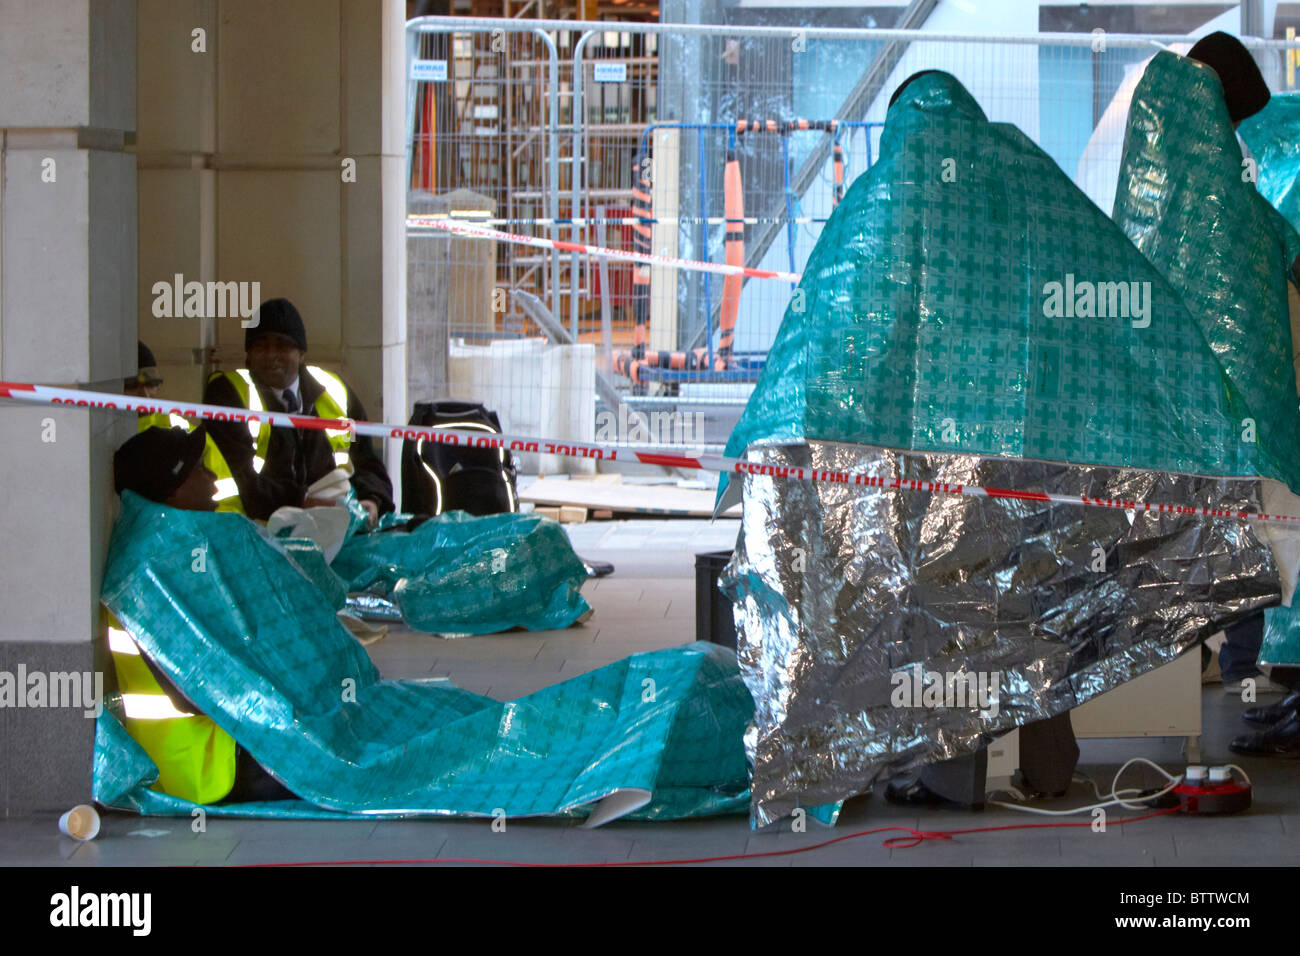 Evacuated office workers use thermal blankets to keep warm after a nearby chemical spill - Stock Image